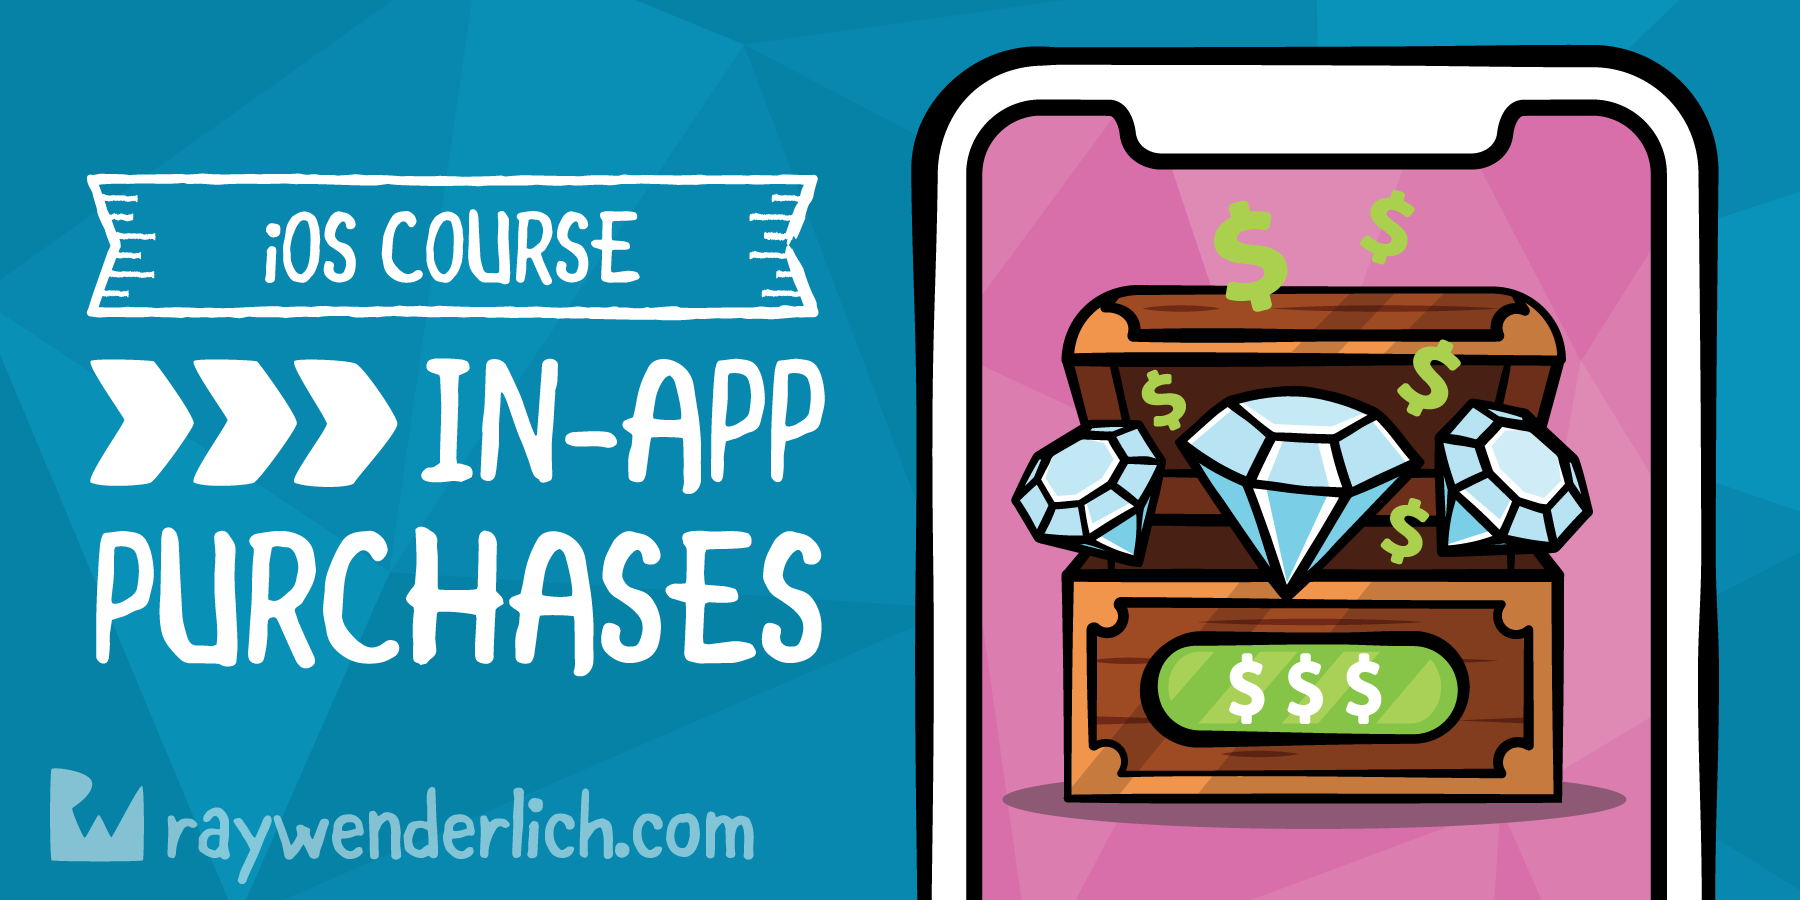 In-App Purchases [SUBSCRIBER]